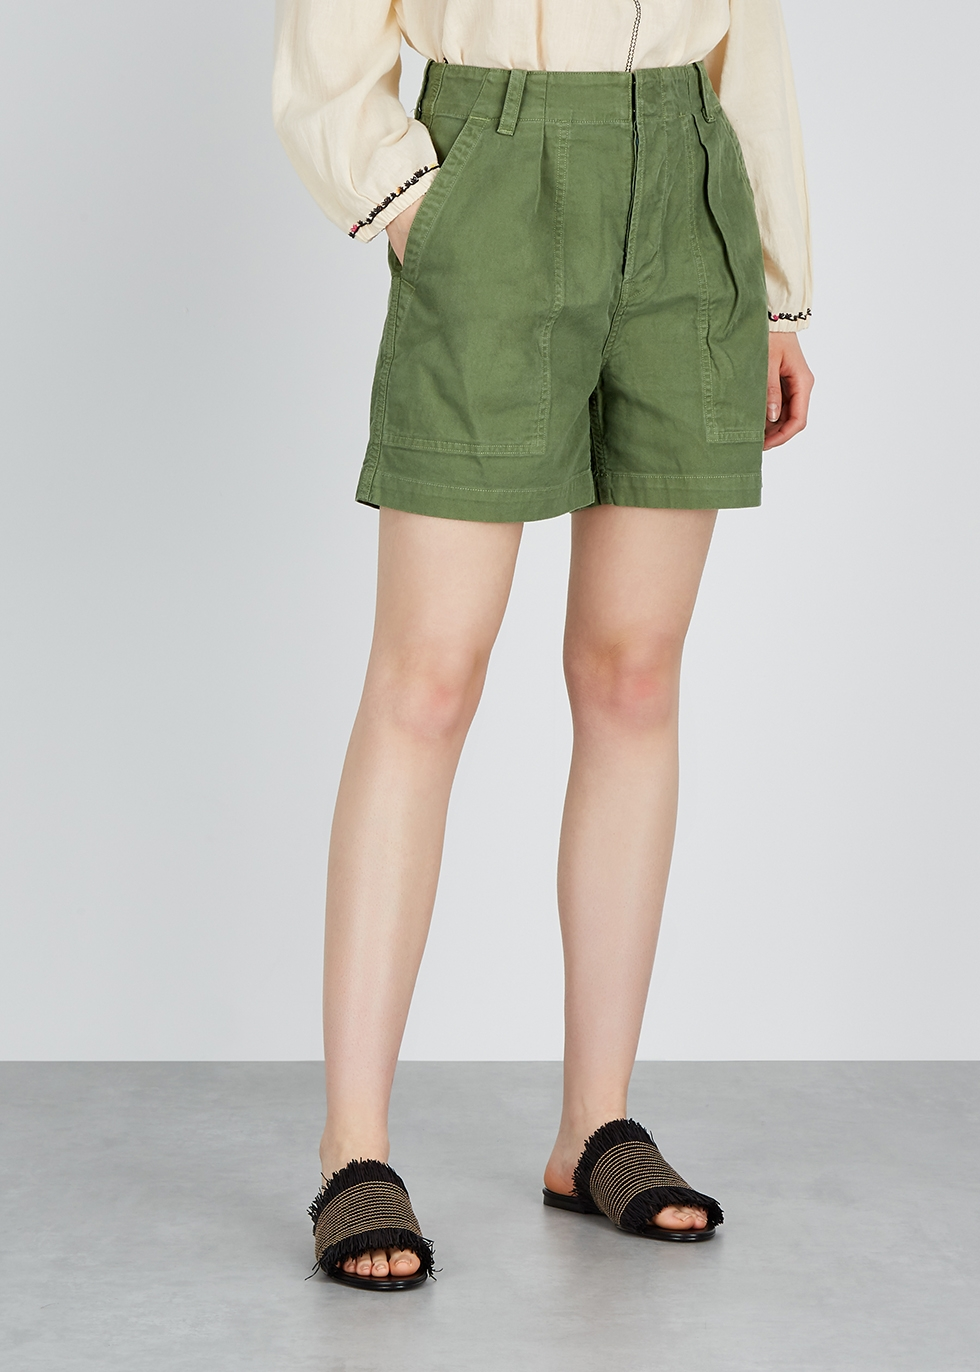 Cassidy army green twill shorts - Citizens of Humanity